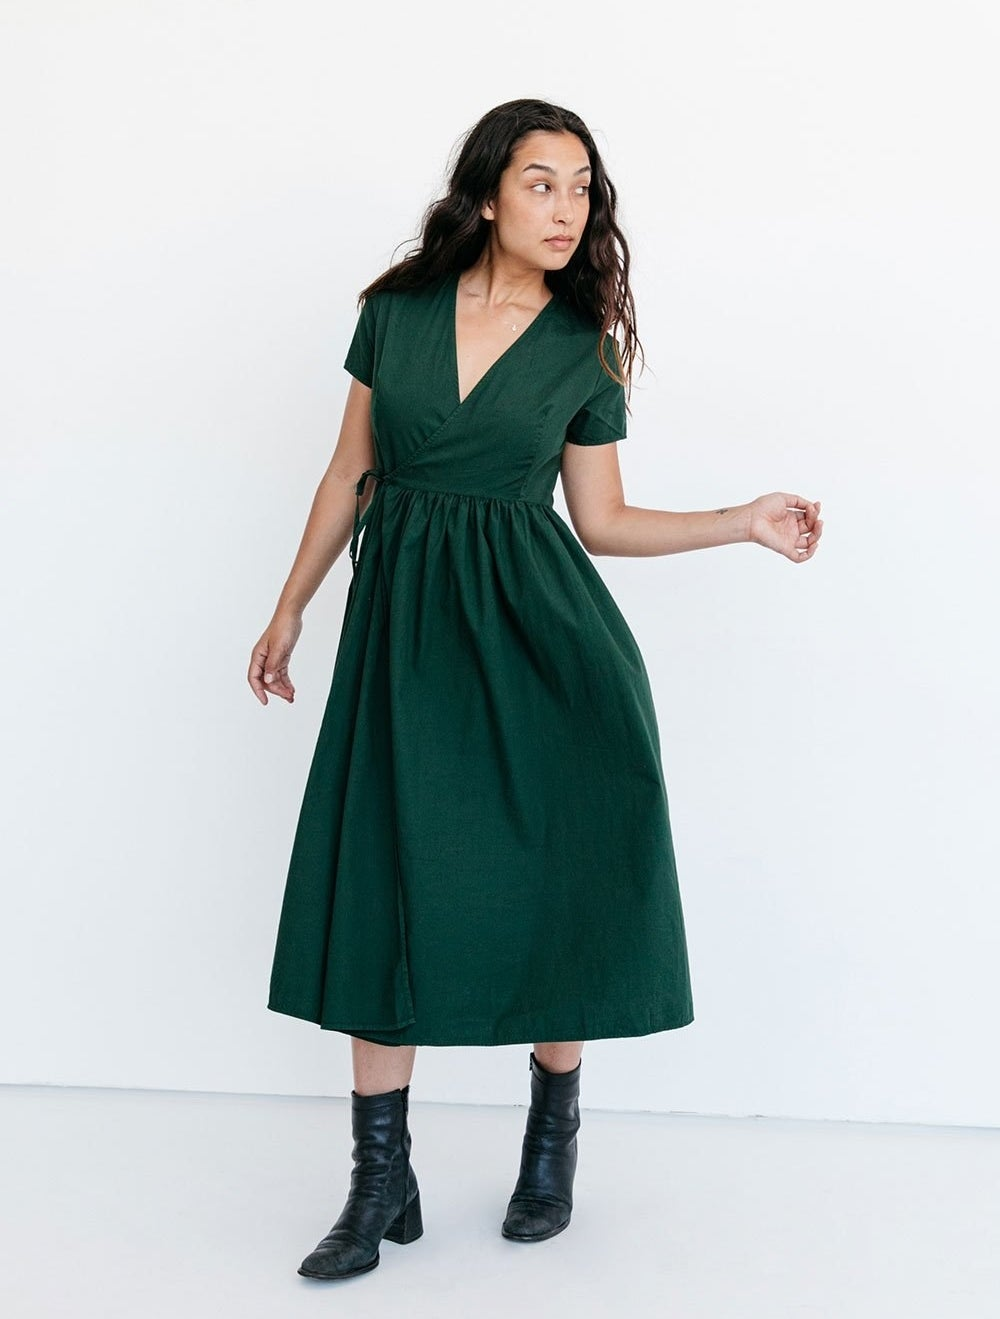 Green midi dress with short sleeves and v-neckline